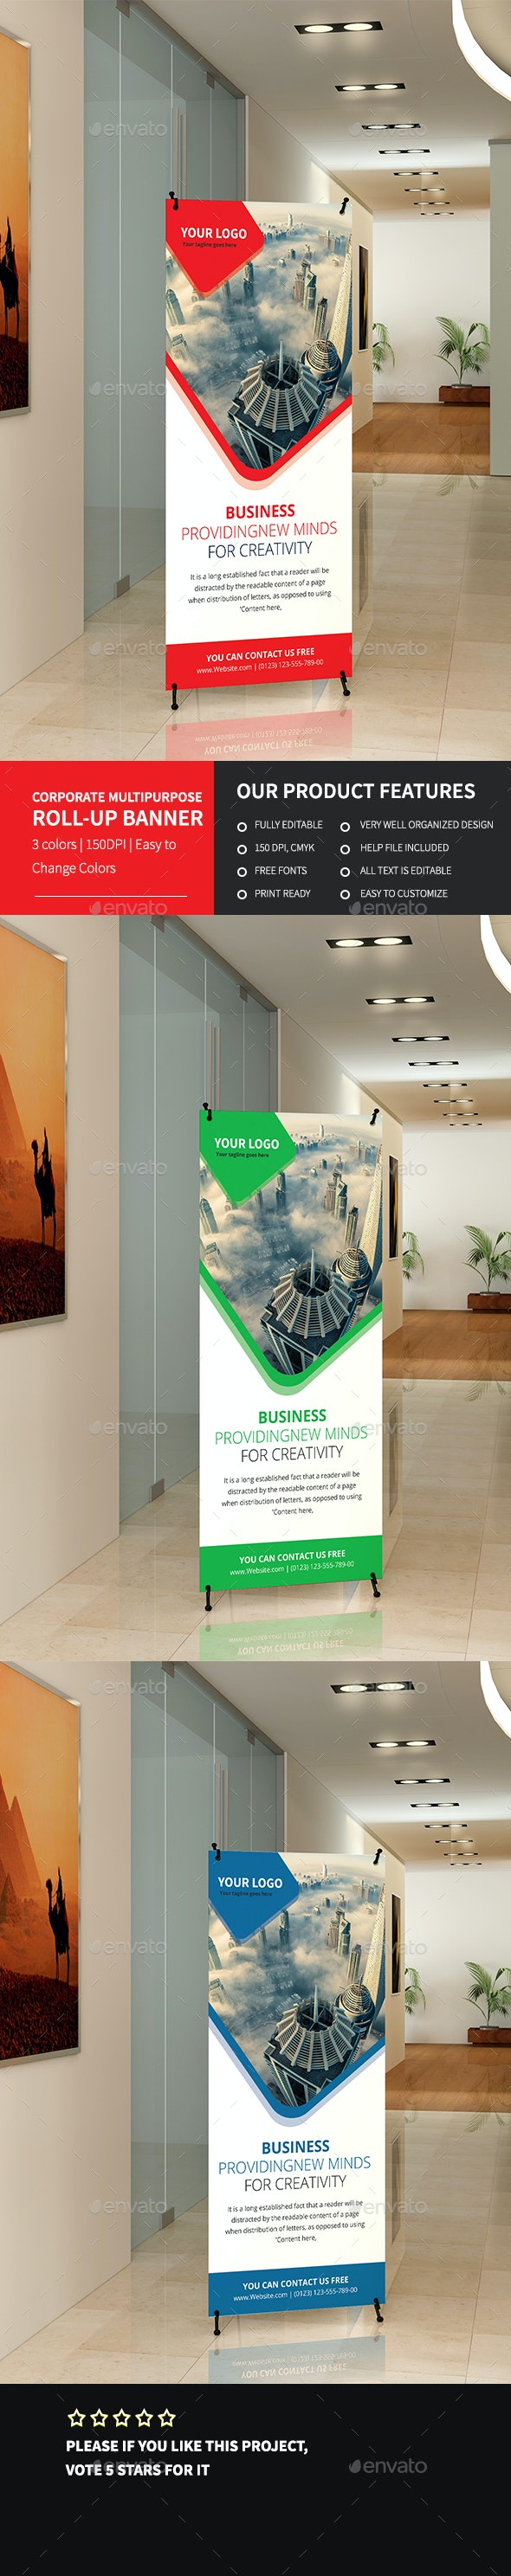 Corporate Multipurpose Roll-up Banner 1 - Signage Print Templates